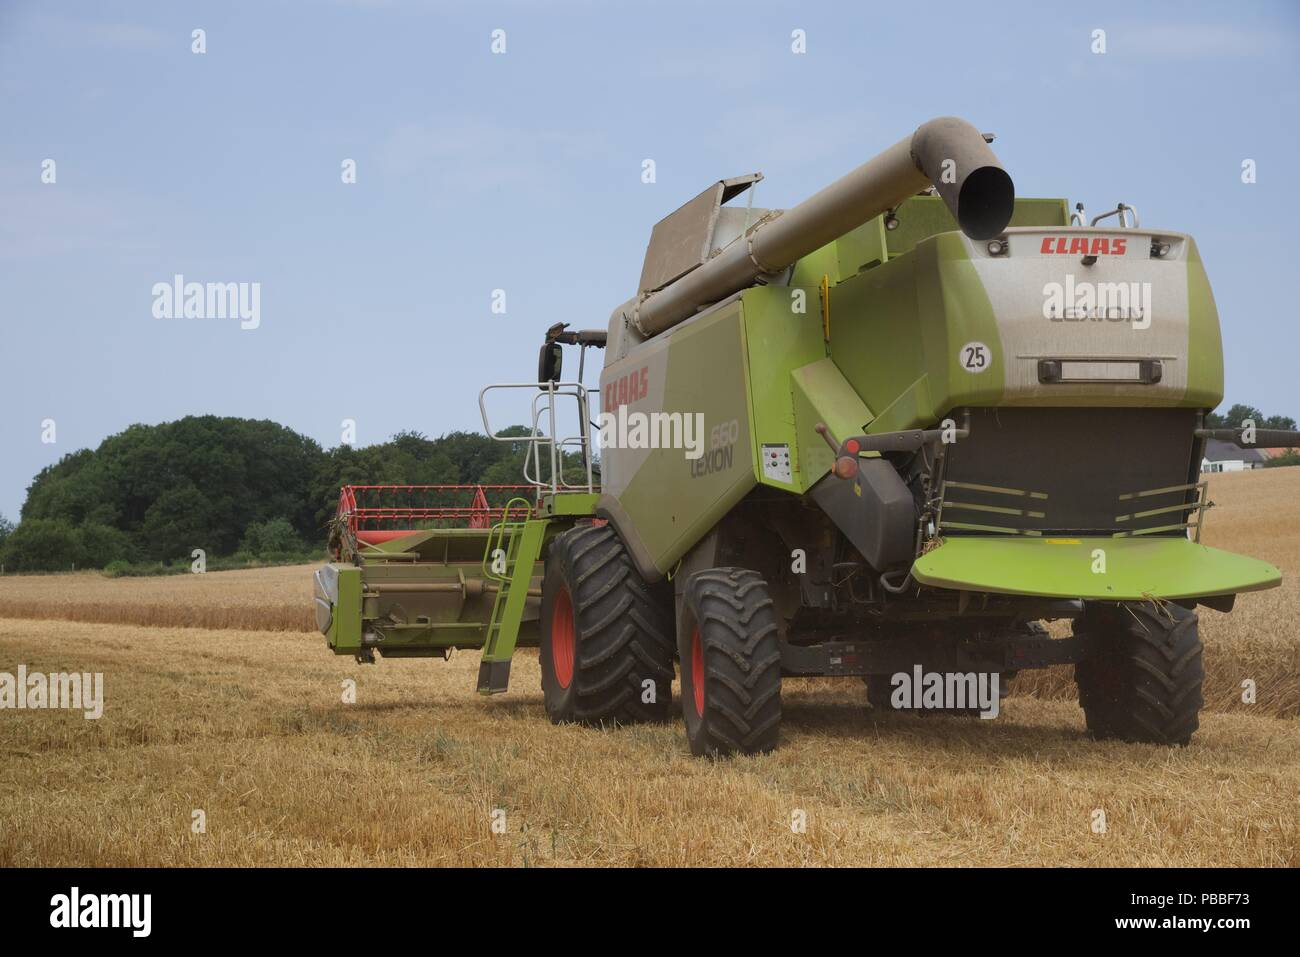 Wheat harvesting: the summer of 2018 and the crops of Pas-de-Calais are 15 days earlier than normal, a flurry of activity ensues to collect the grain - Stock Image